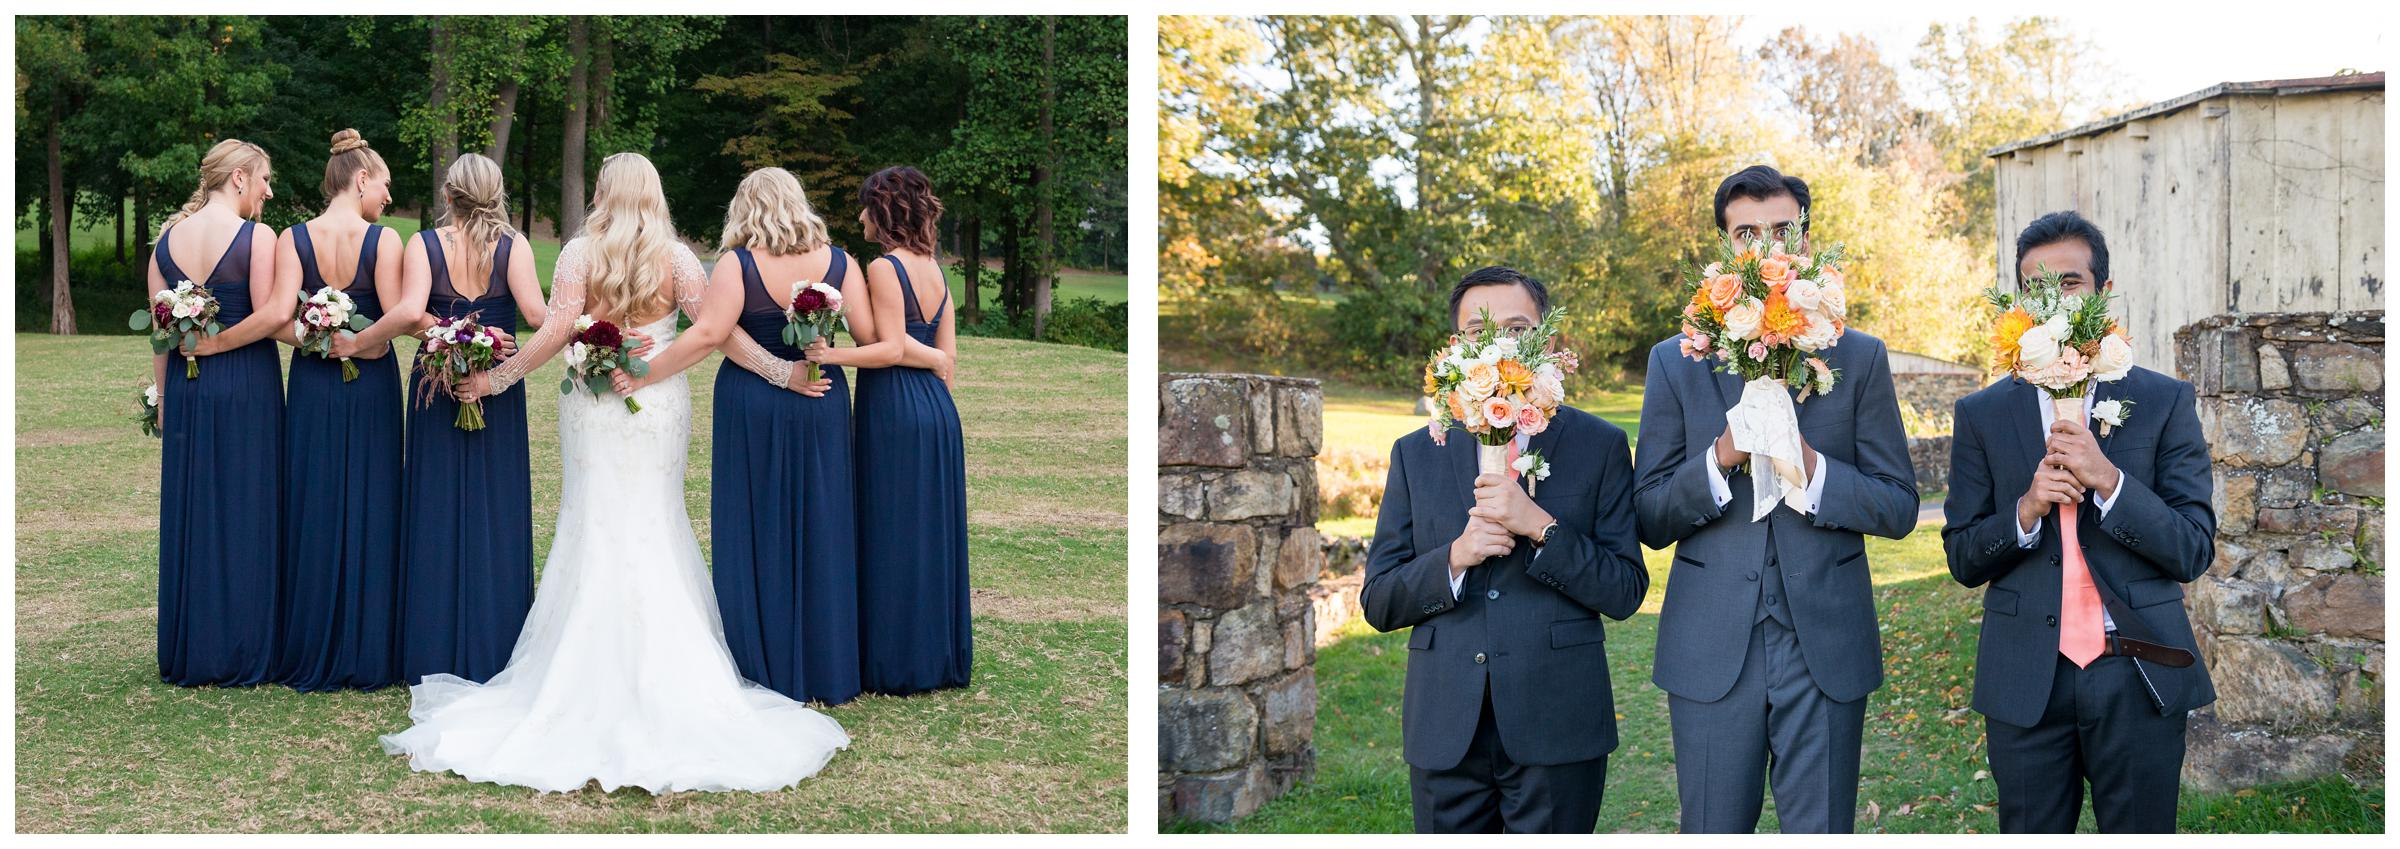 bridesmaids backs with flowers, groomsmen holding bouquets